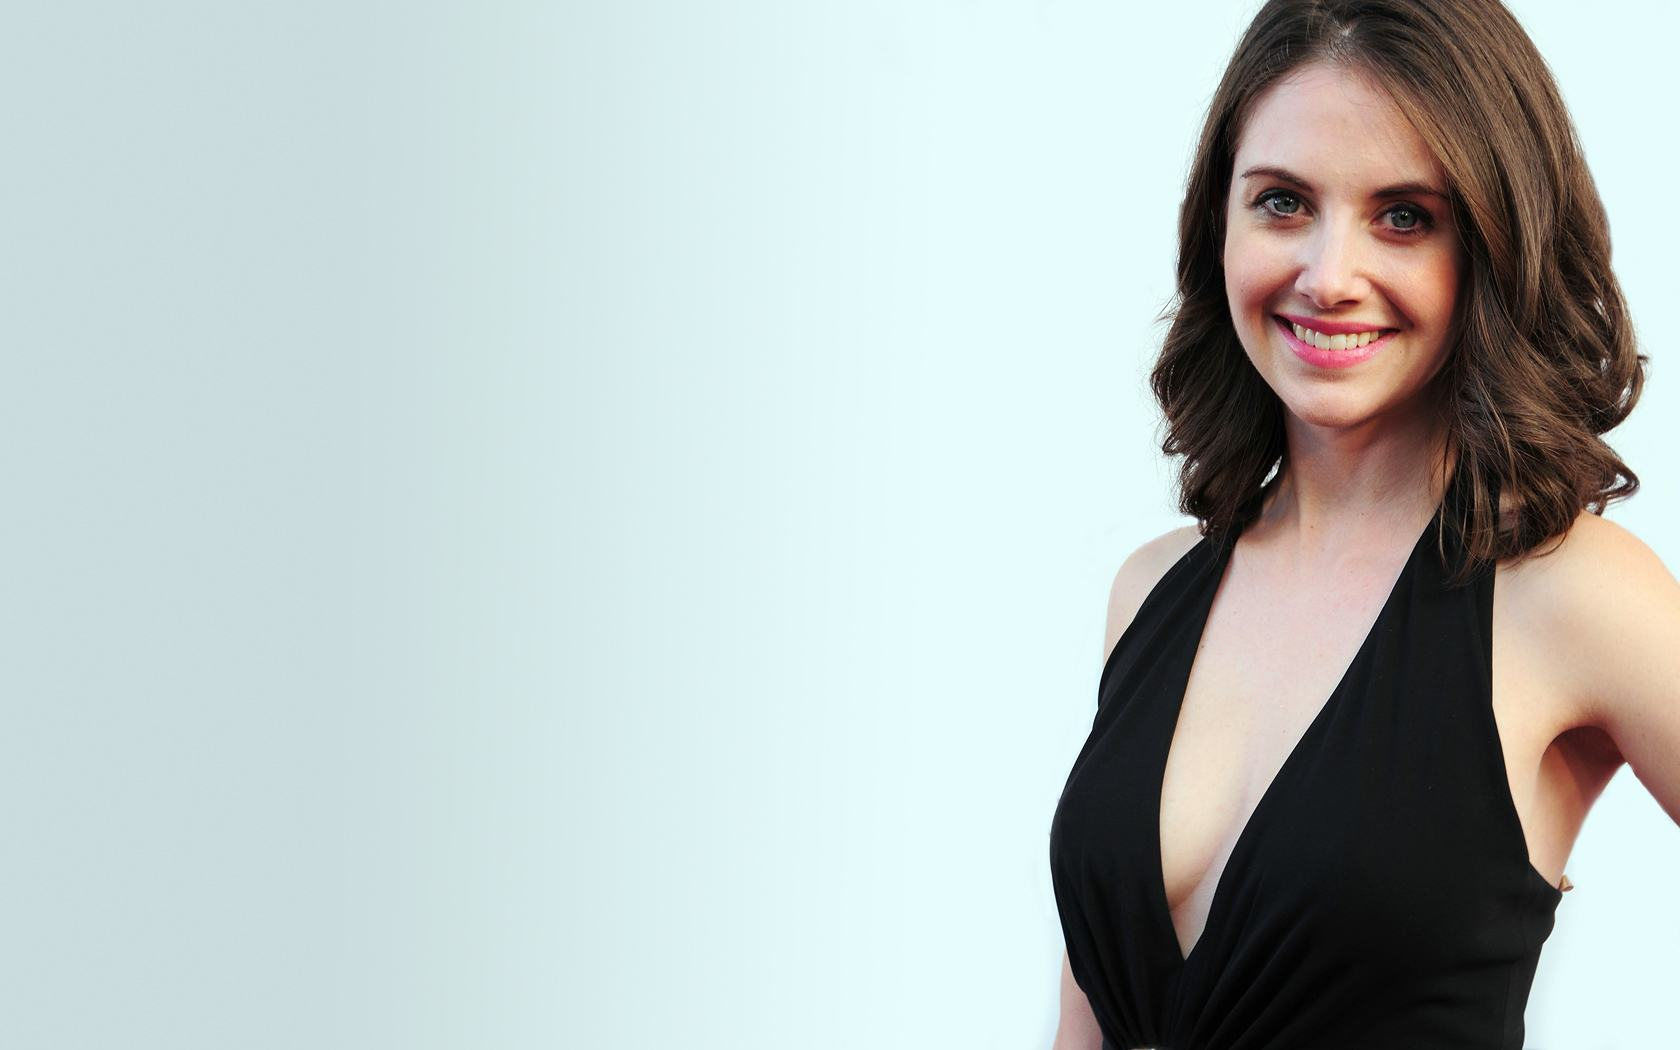 1680x1050 - Alison Brie Wallpapers 3